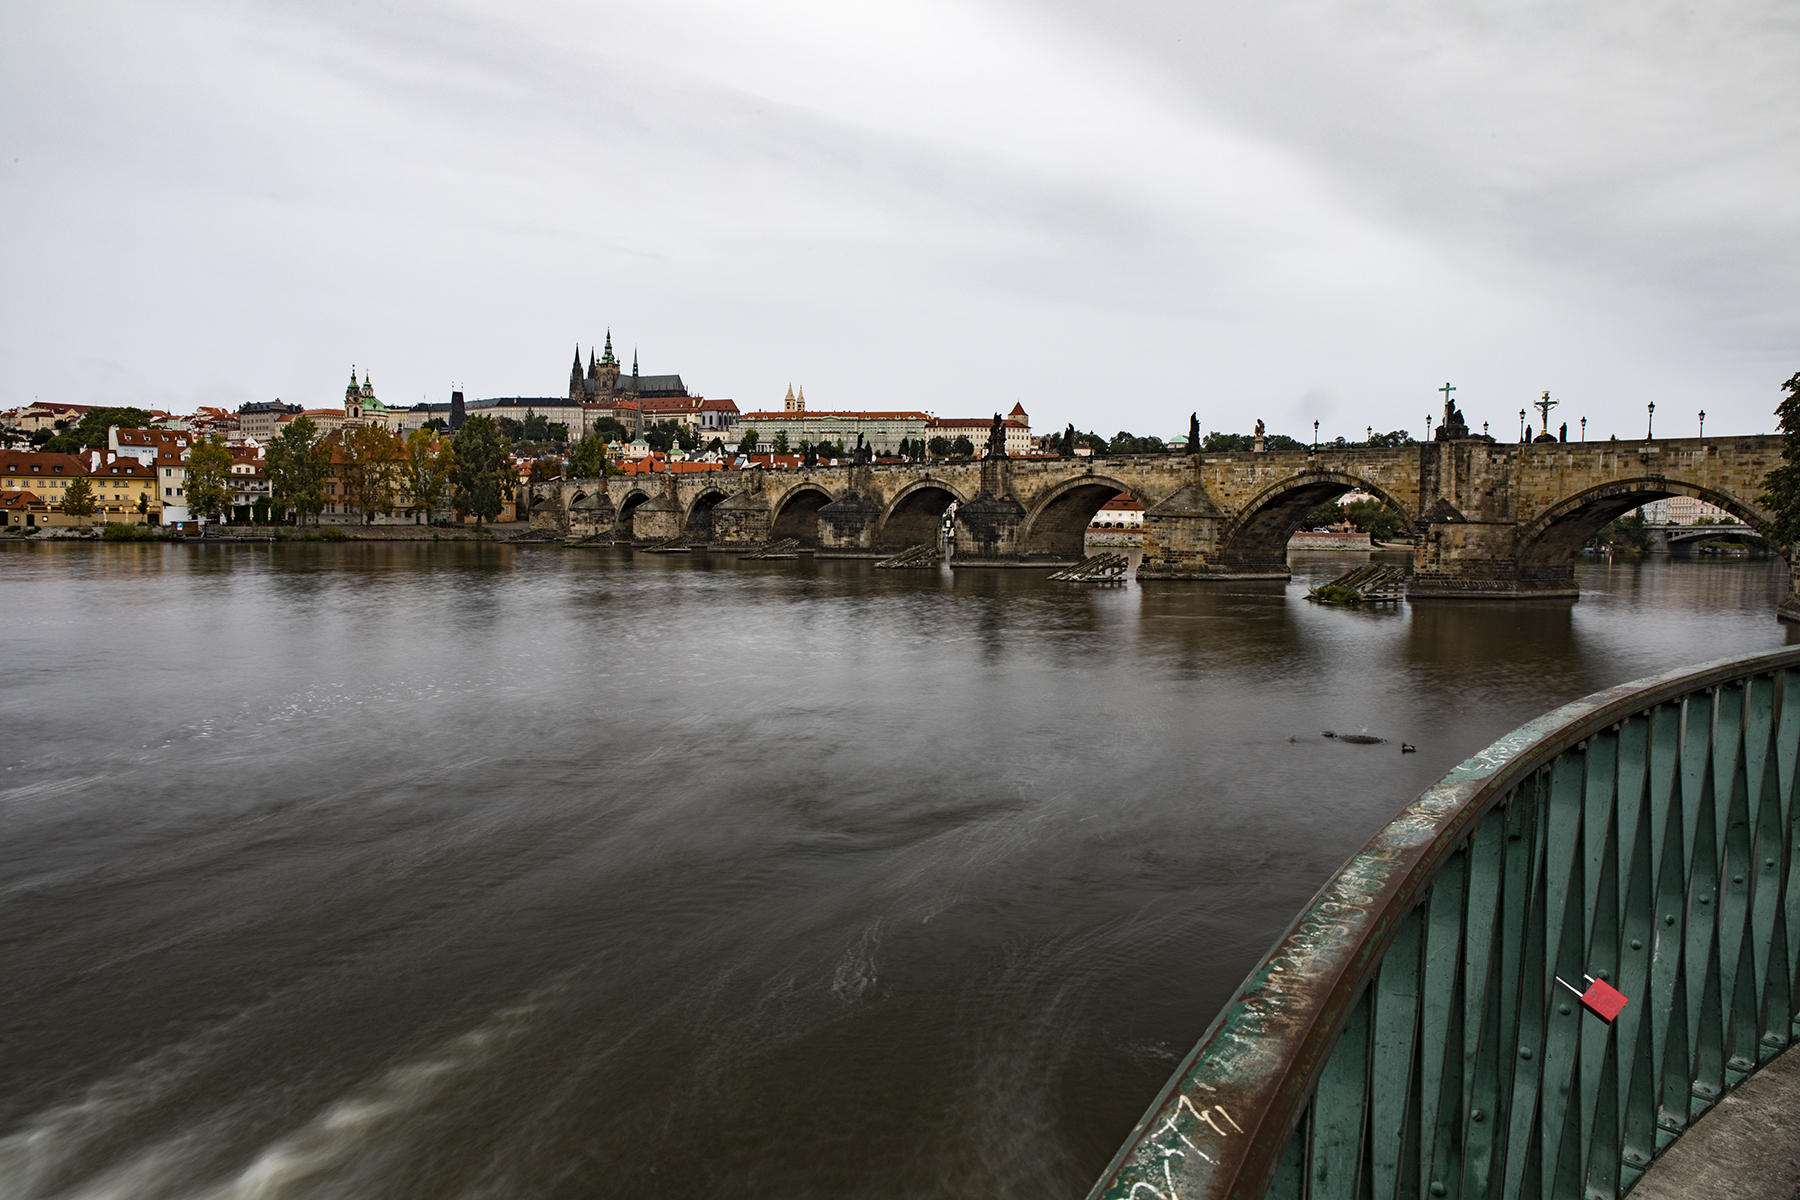 Vltava river and the Charles Bridge. Directly to my right were 20 Asian tourists.